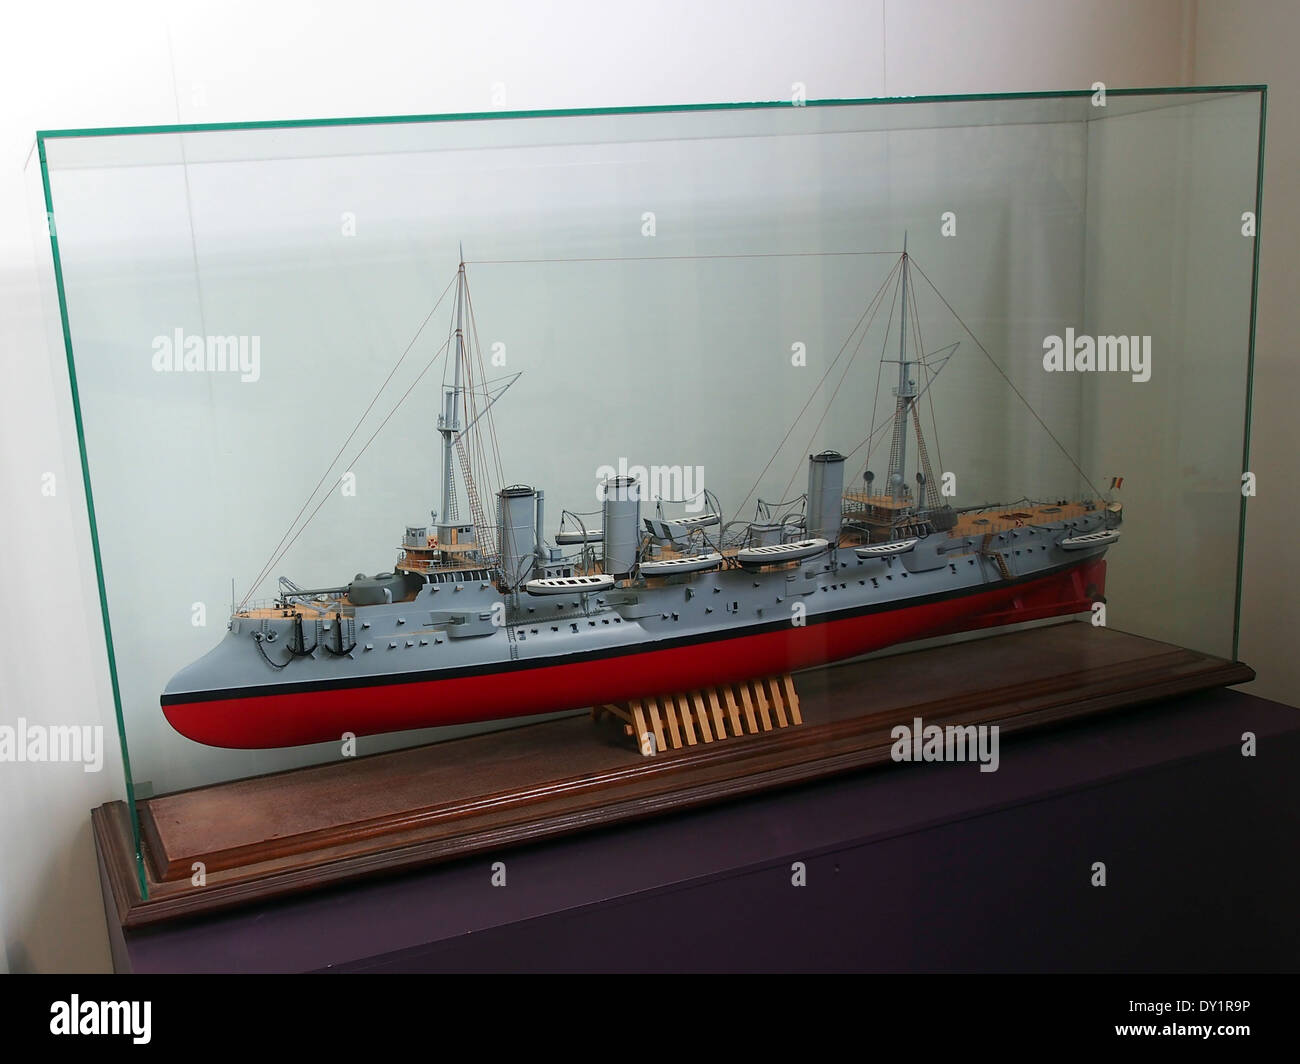 WWI warship model in the Royal Military Museum Brussels - Stock Image